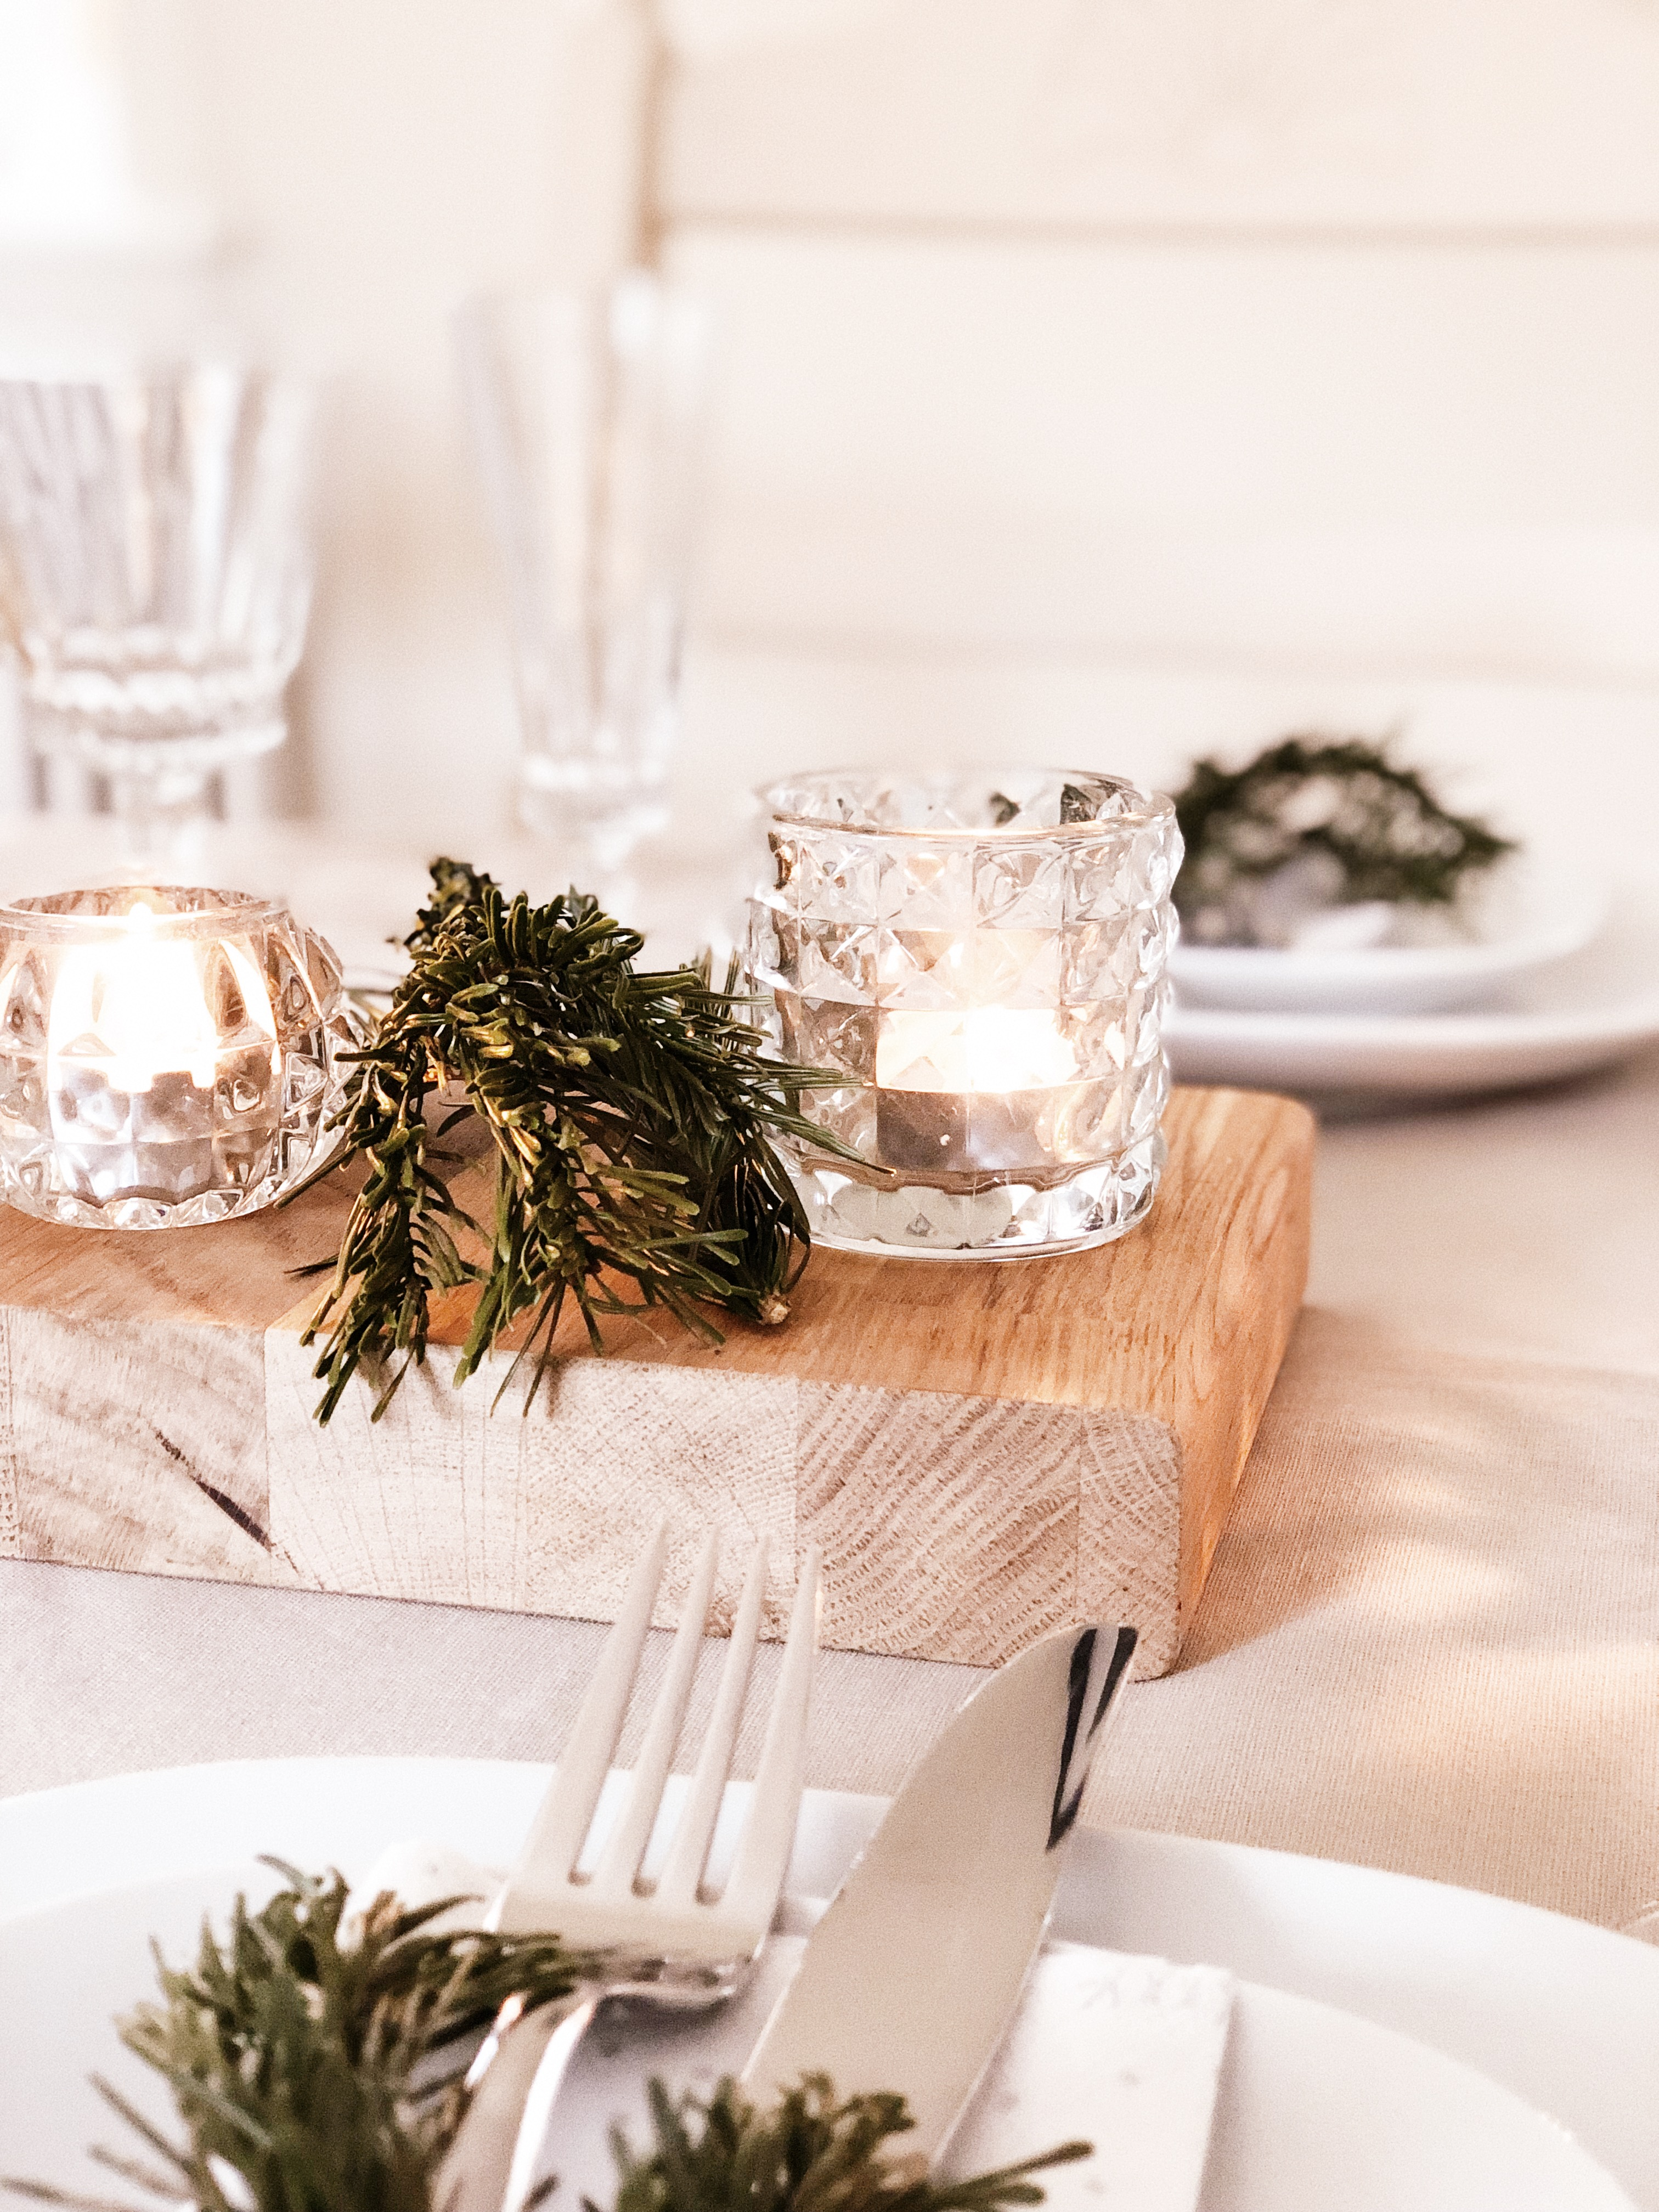 Elegant table style with vintage glassware and fern